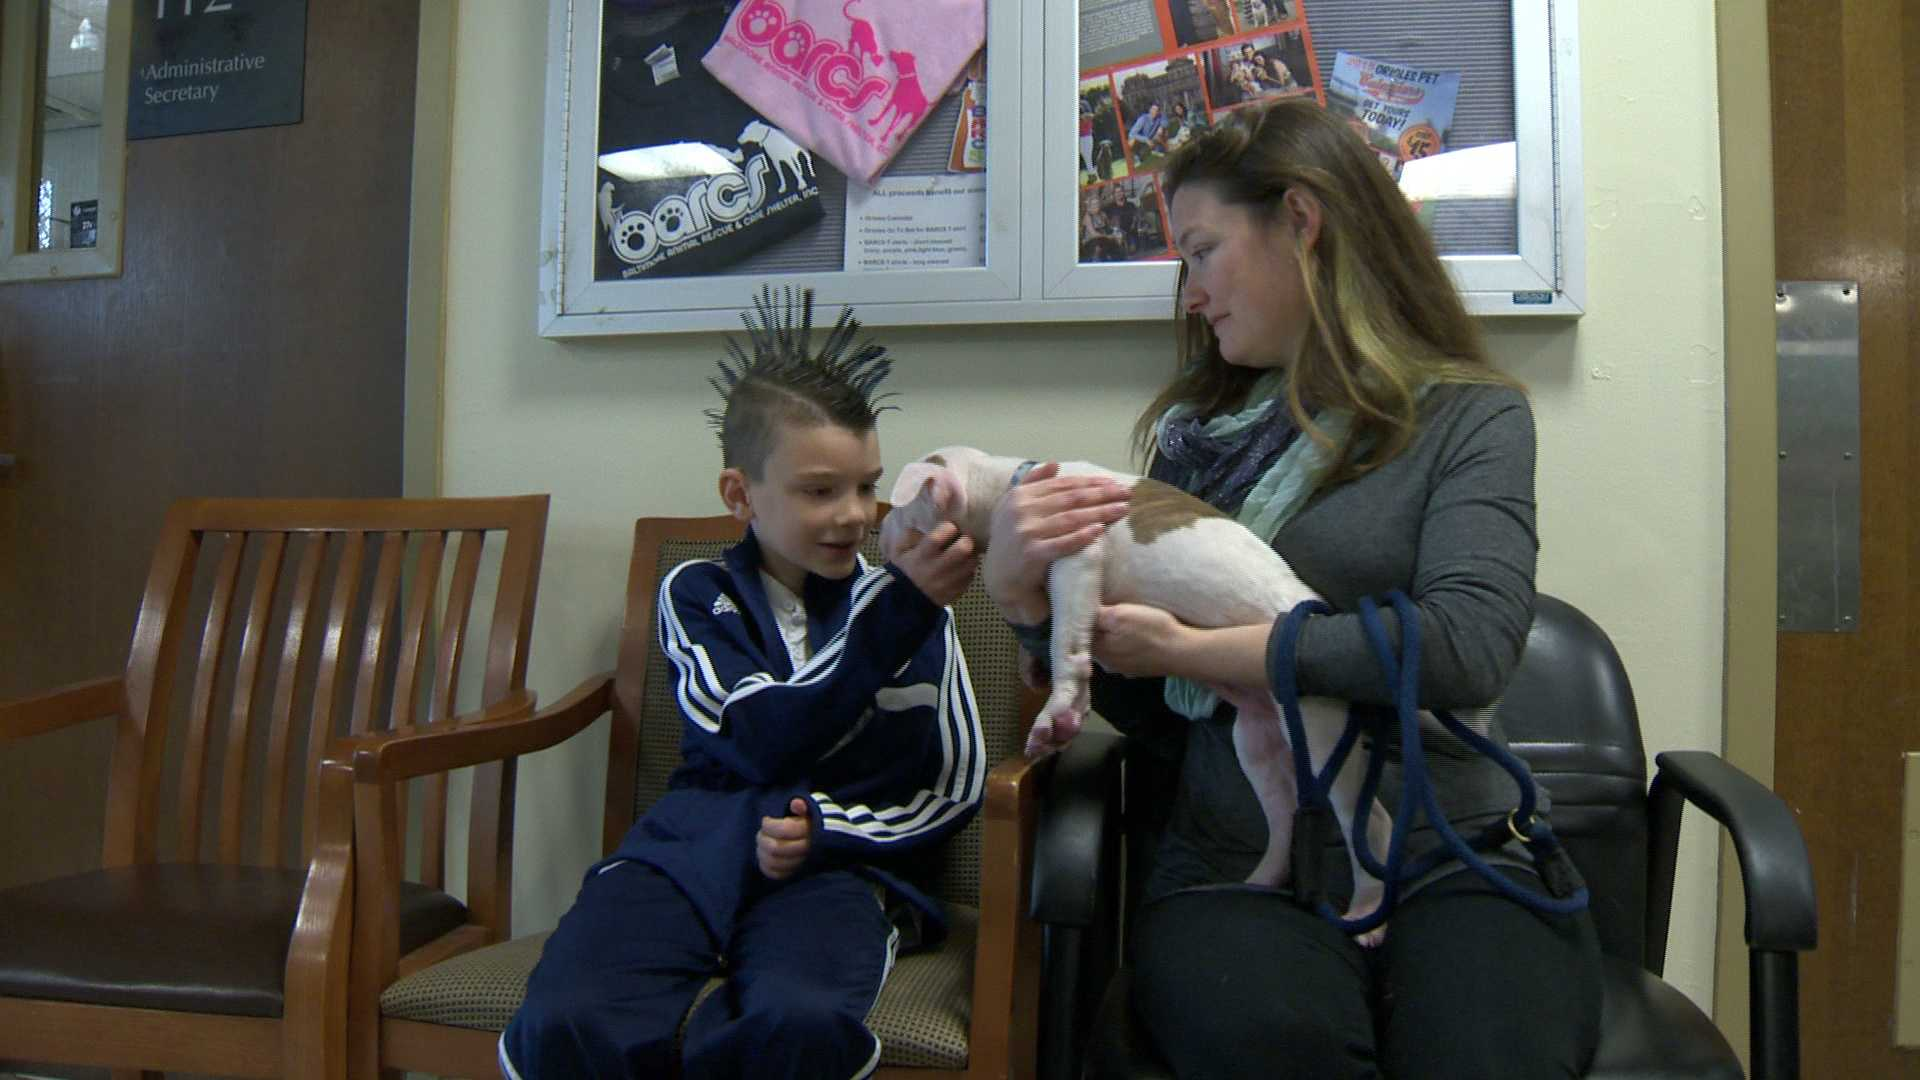 Logan Ader, 10, and his mom pet one of the puppies at BARCS.